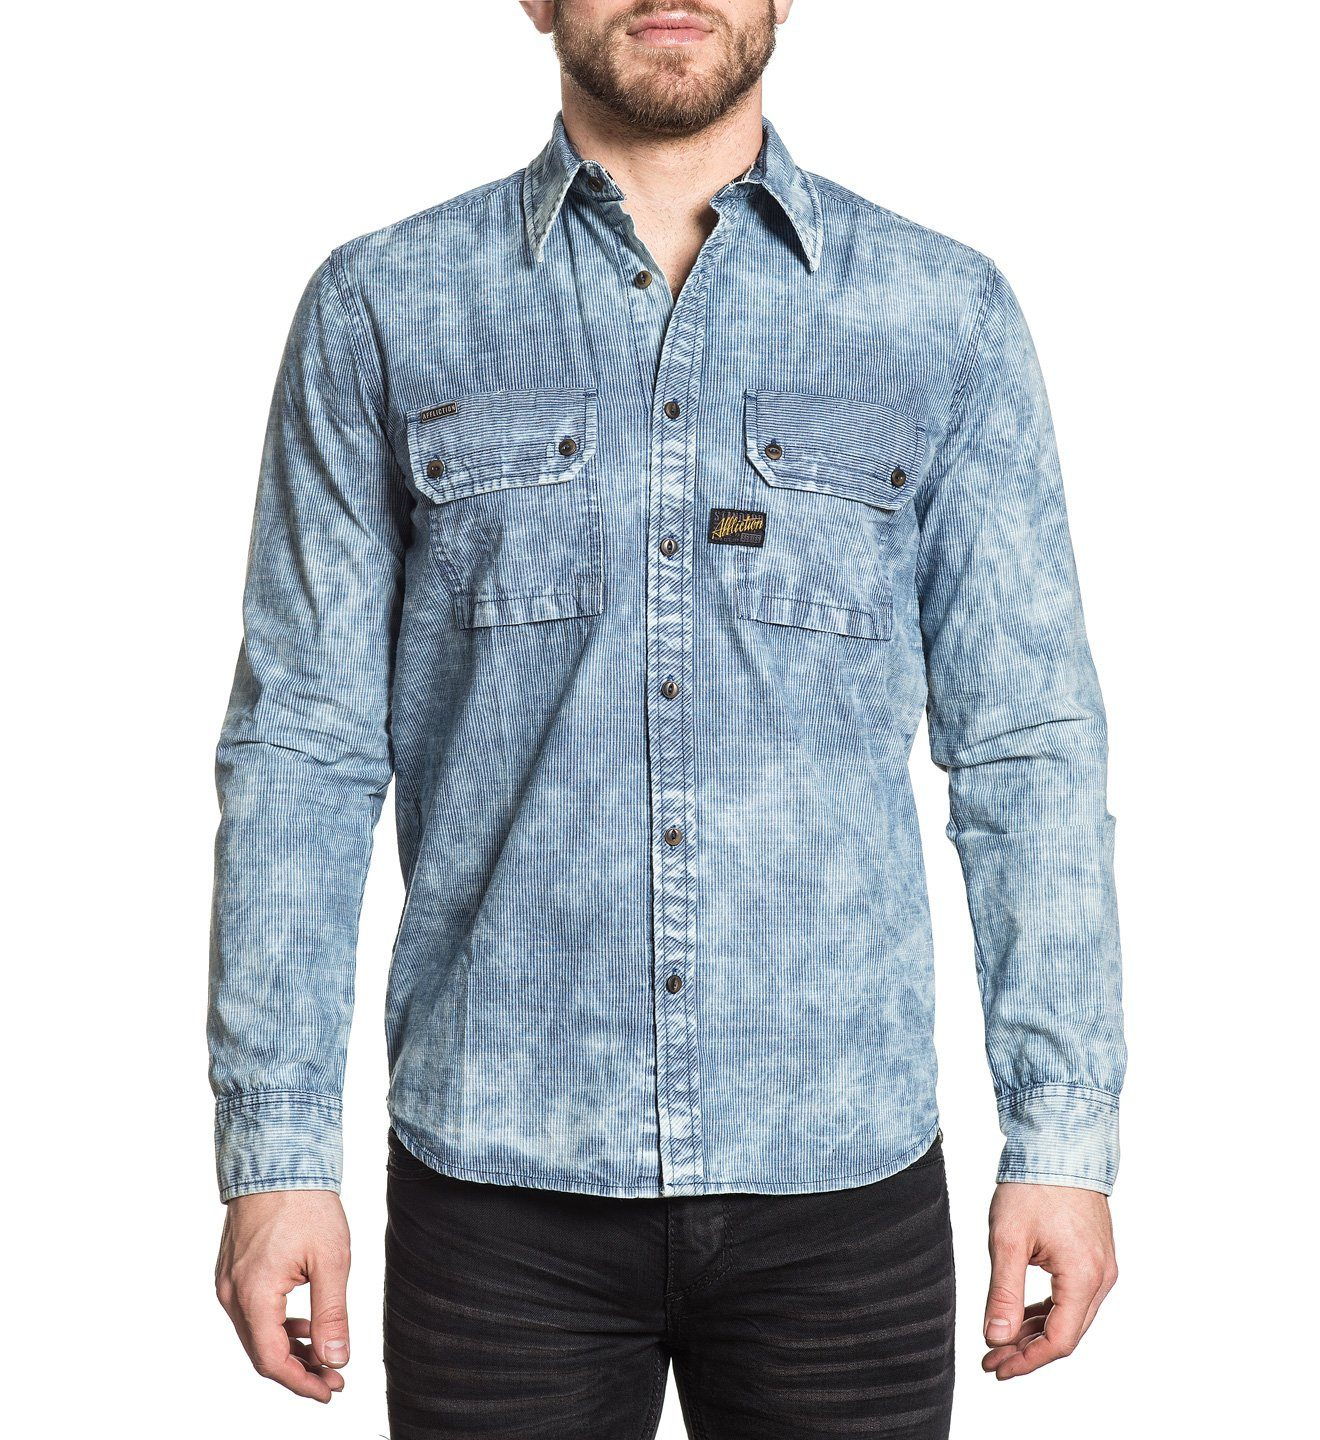 Sunset Blues - Mens Button Down Tops - Affliction Clothing